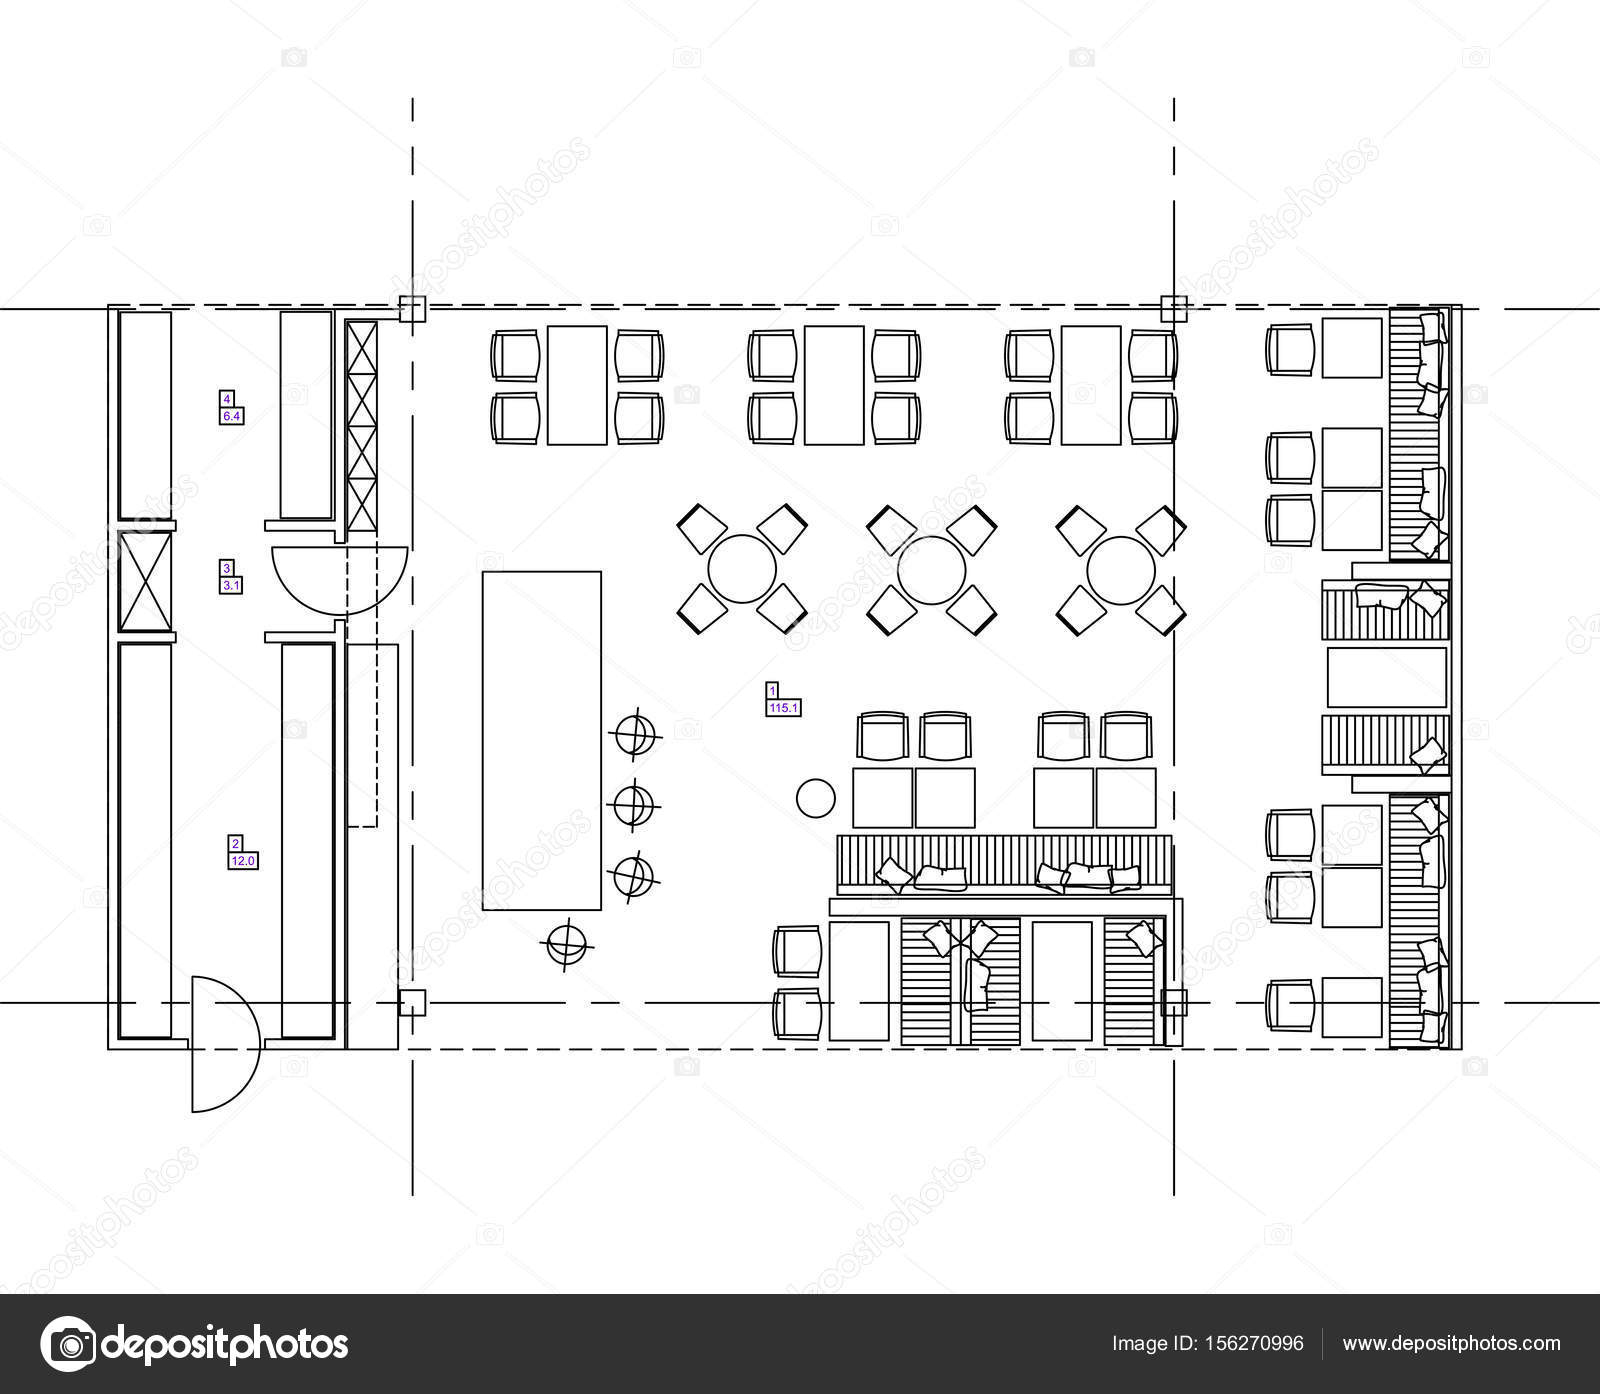 Standard Furniture Symbols Used In Architecture Plans Stock Vector